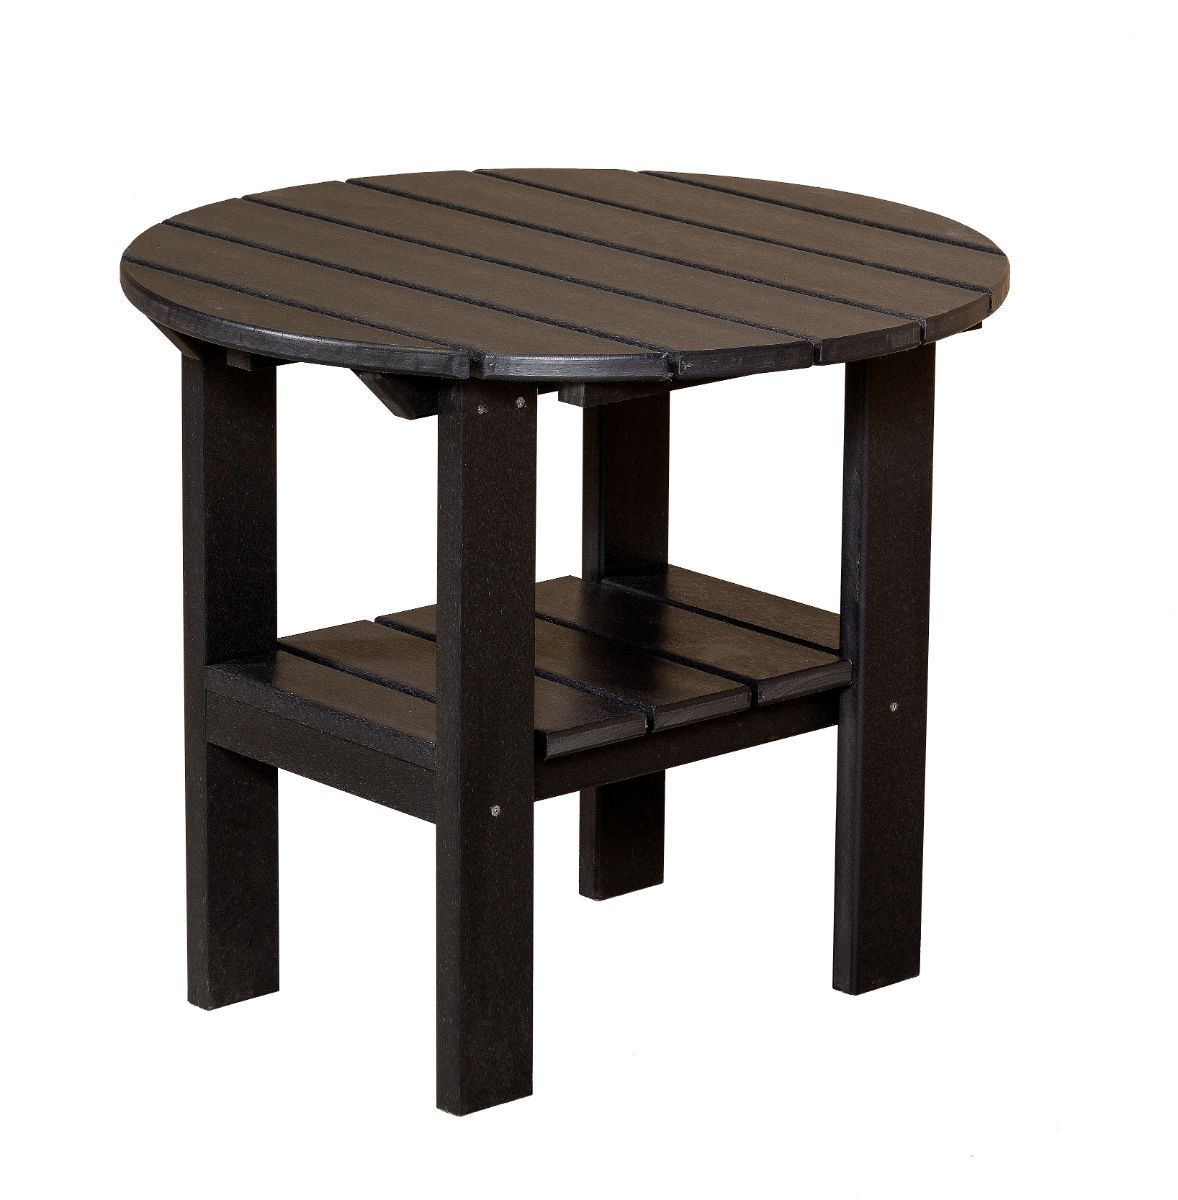 Black Odessa Round Outdoor Side Table